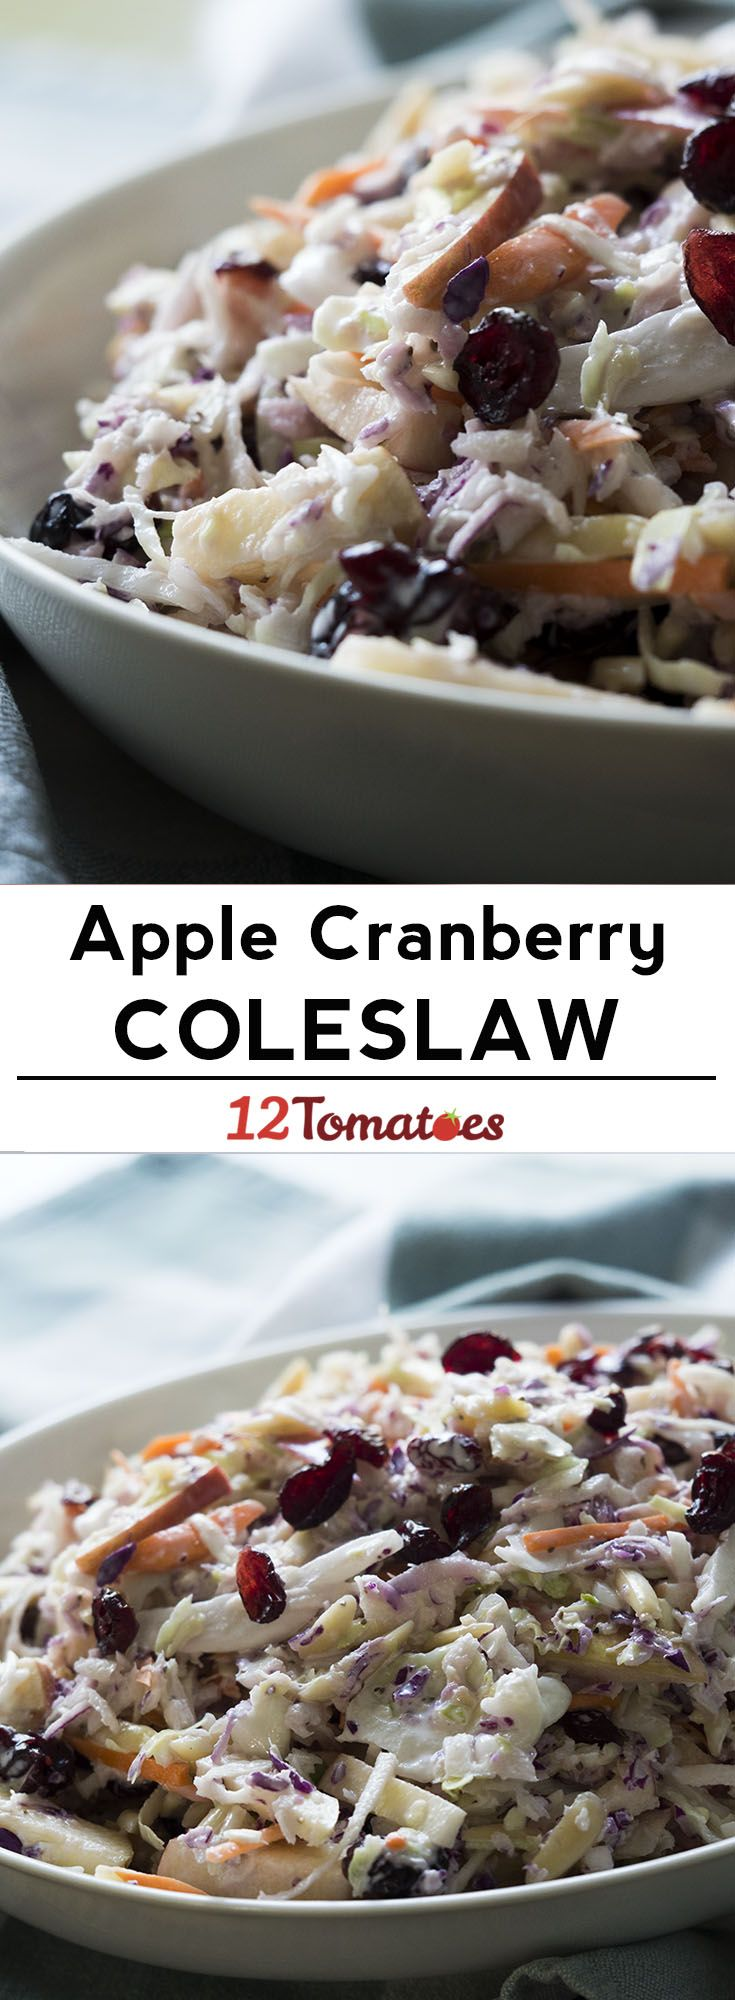 Apple Cranberry Almond Coleslaw | Recipe | Cole slaw, Coleslaw and ...